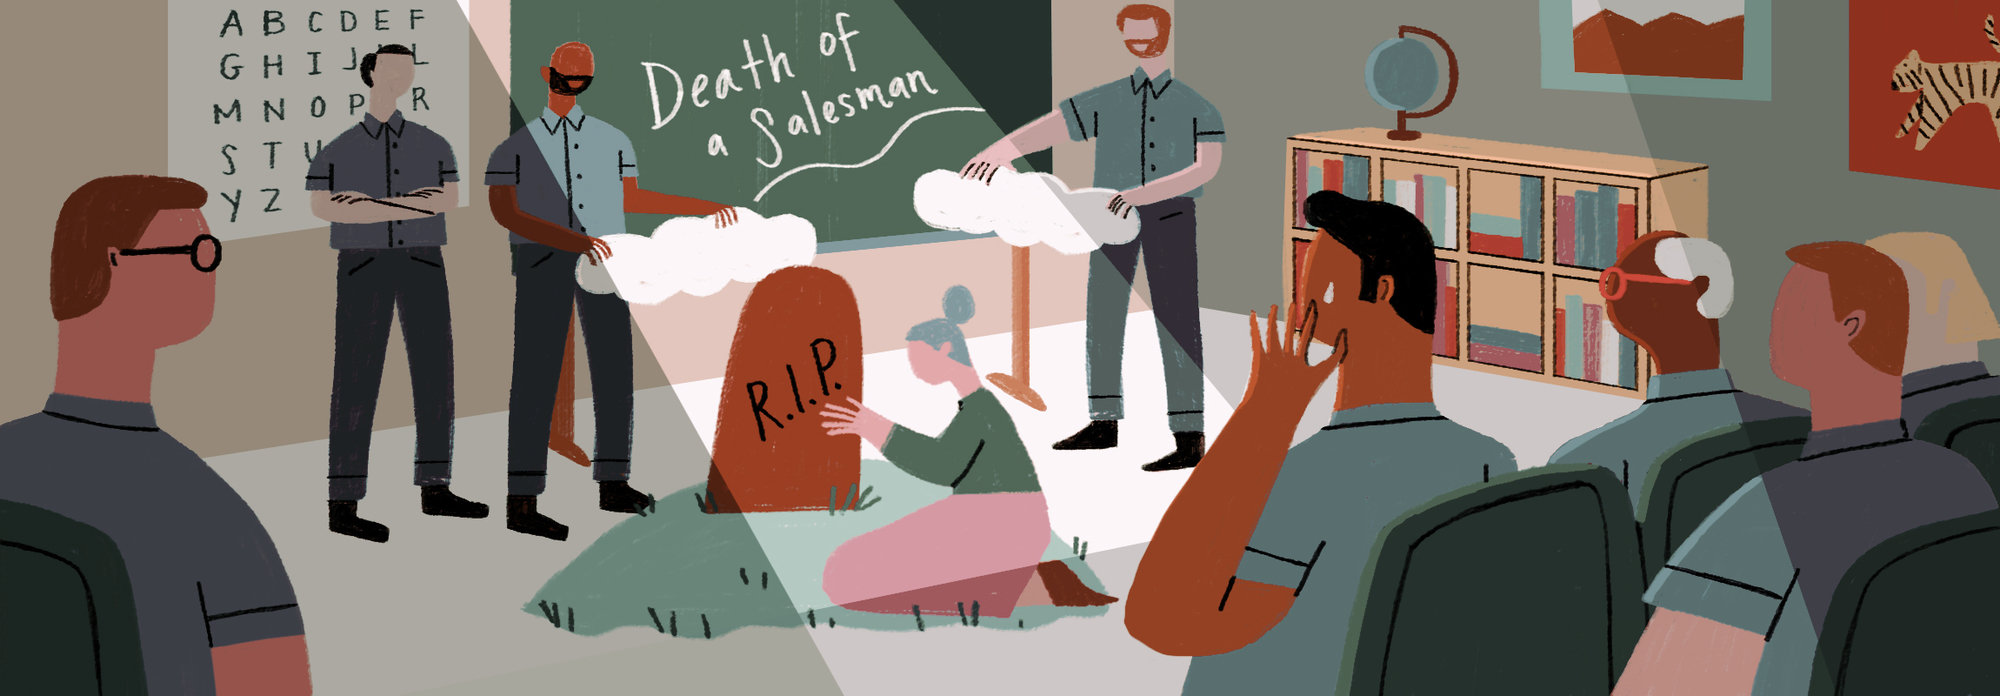 How Prisoners Brought 'Death of a Salesman' to Life